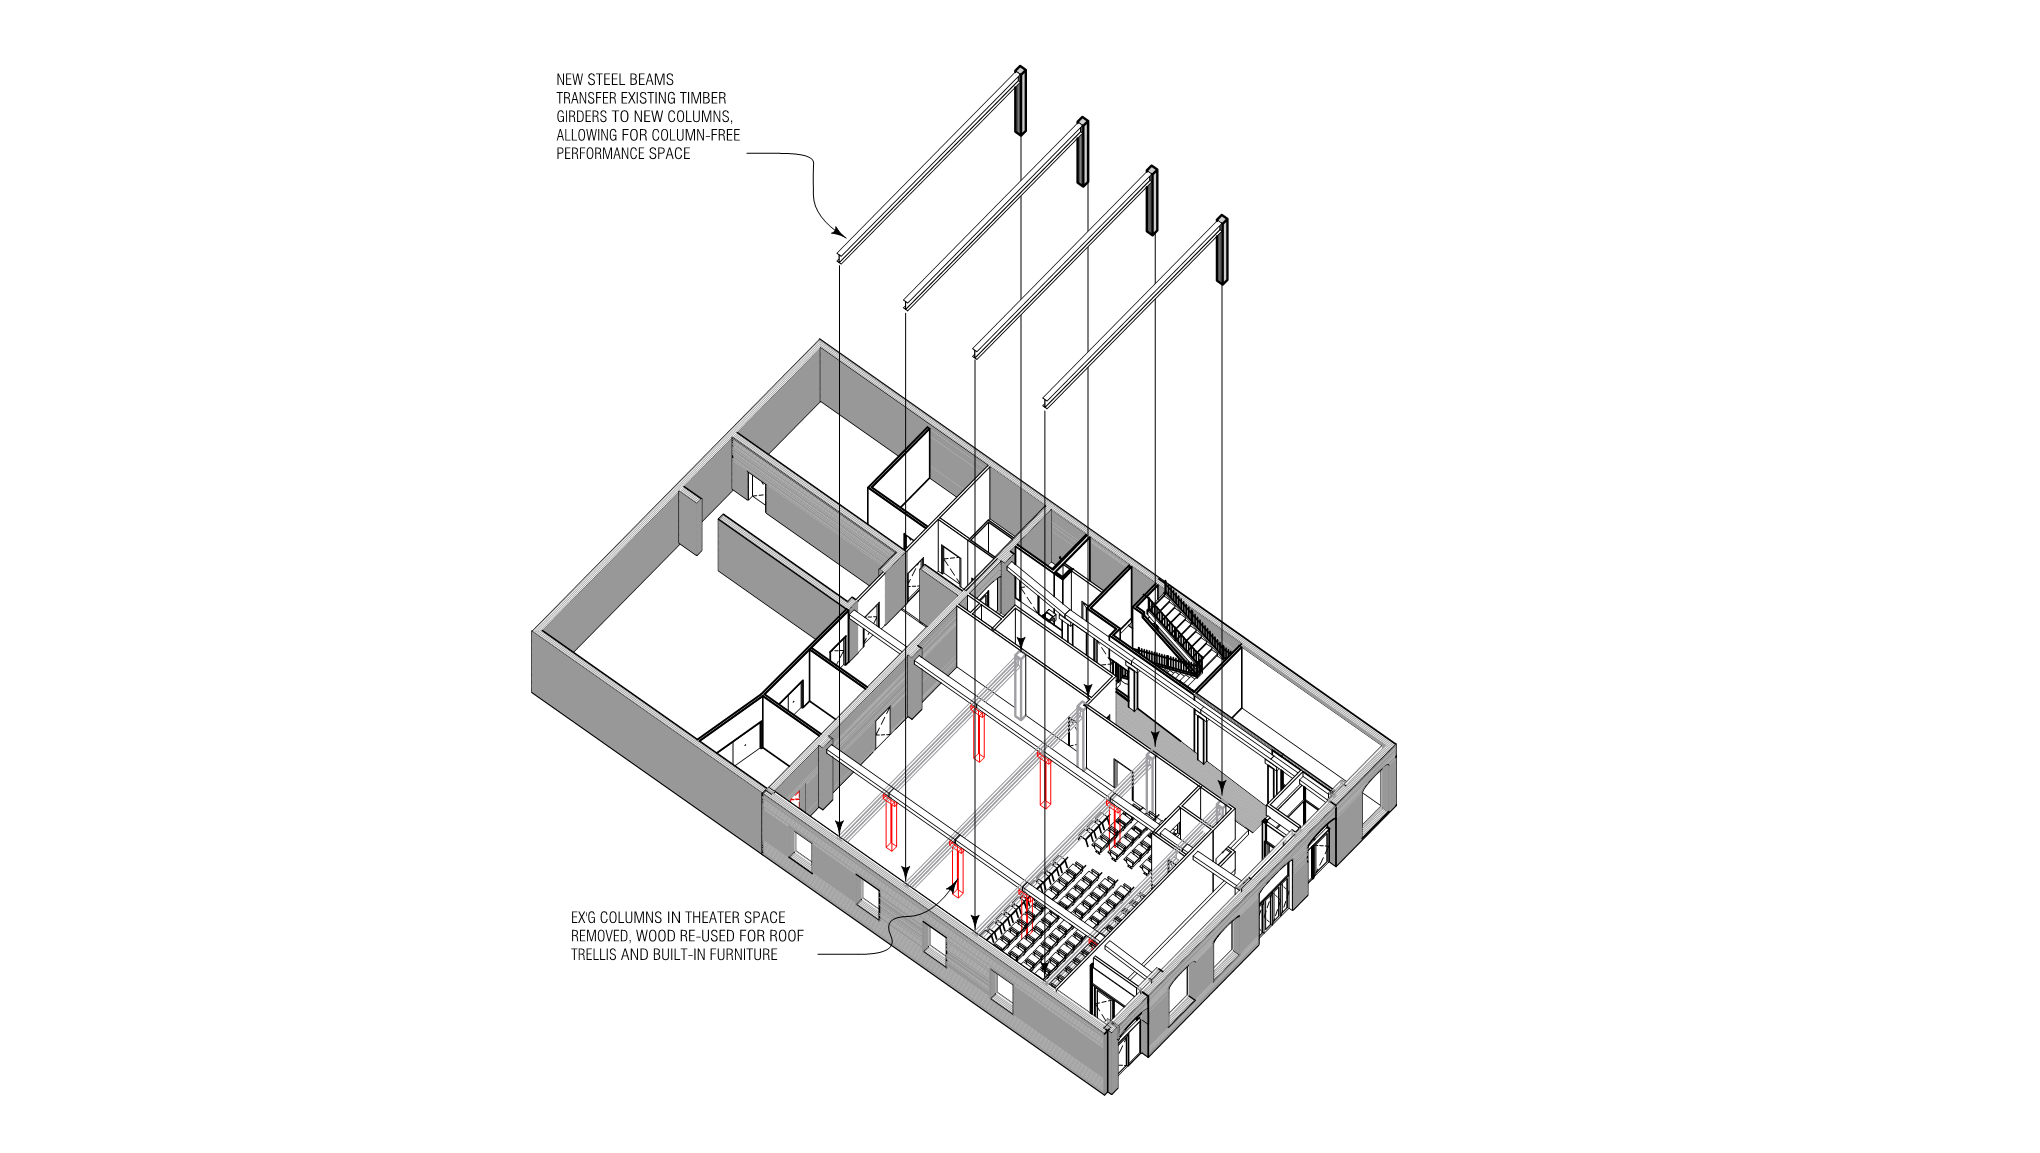 150728 Revised Ground Floor Structural Concept.png